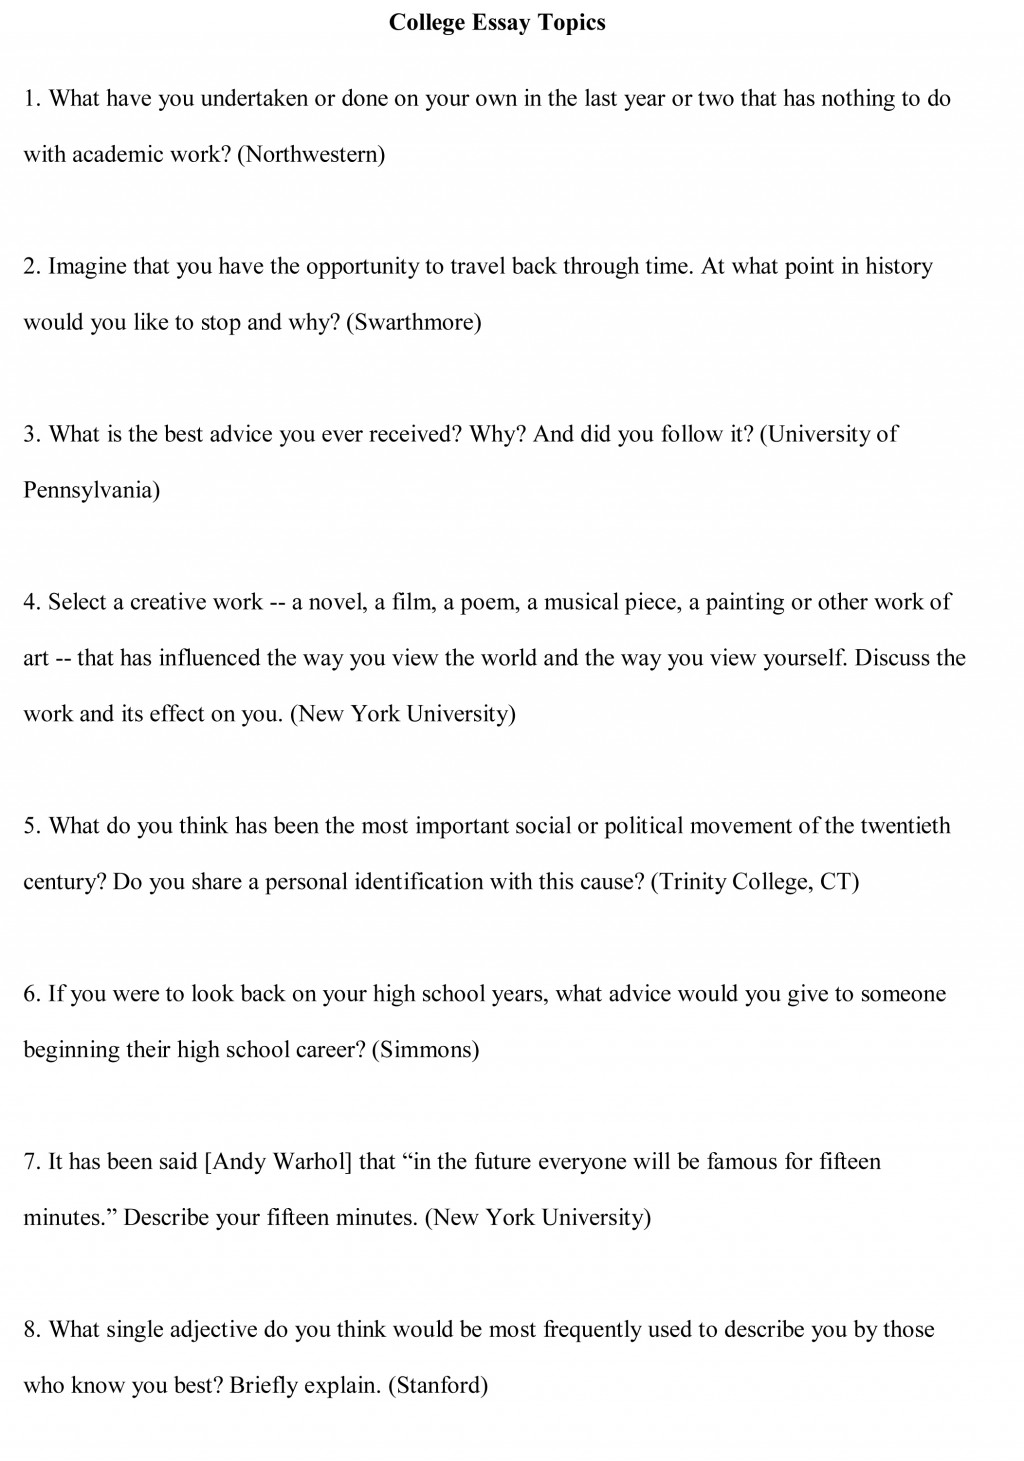 005 College Essay Prompt Examples Example Topics Free Unforgettable Uc #1 Writing 2 Large